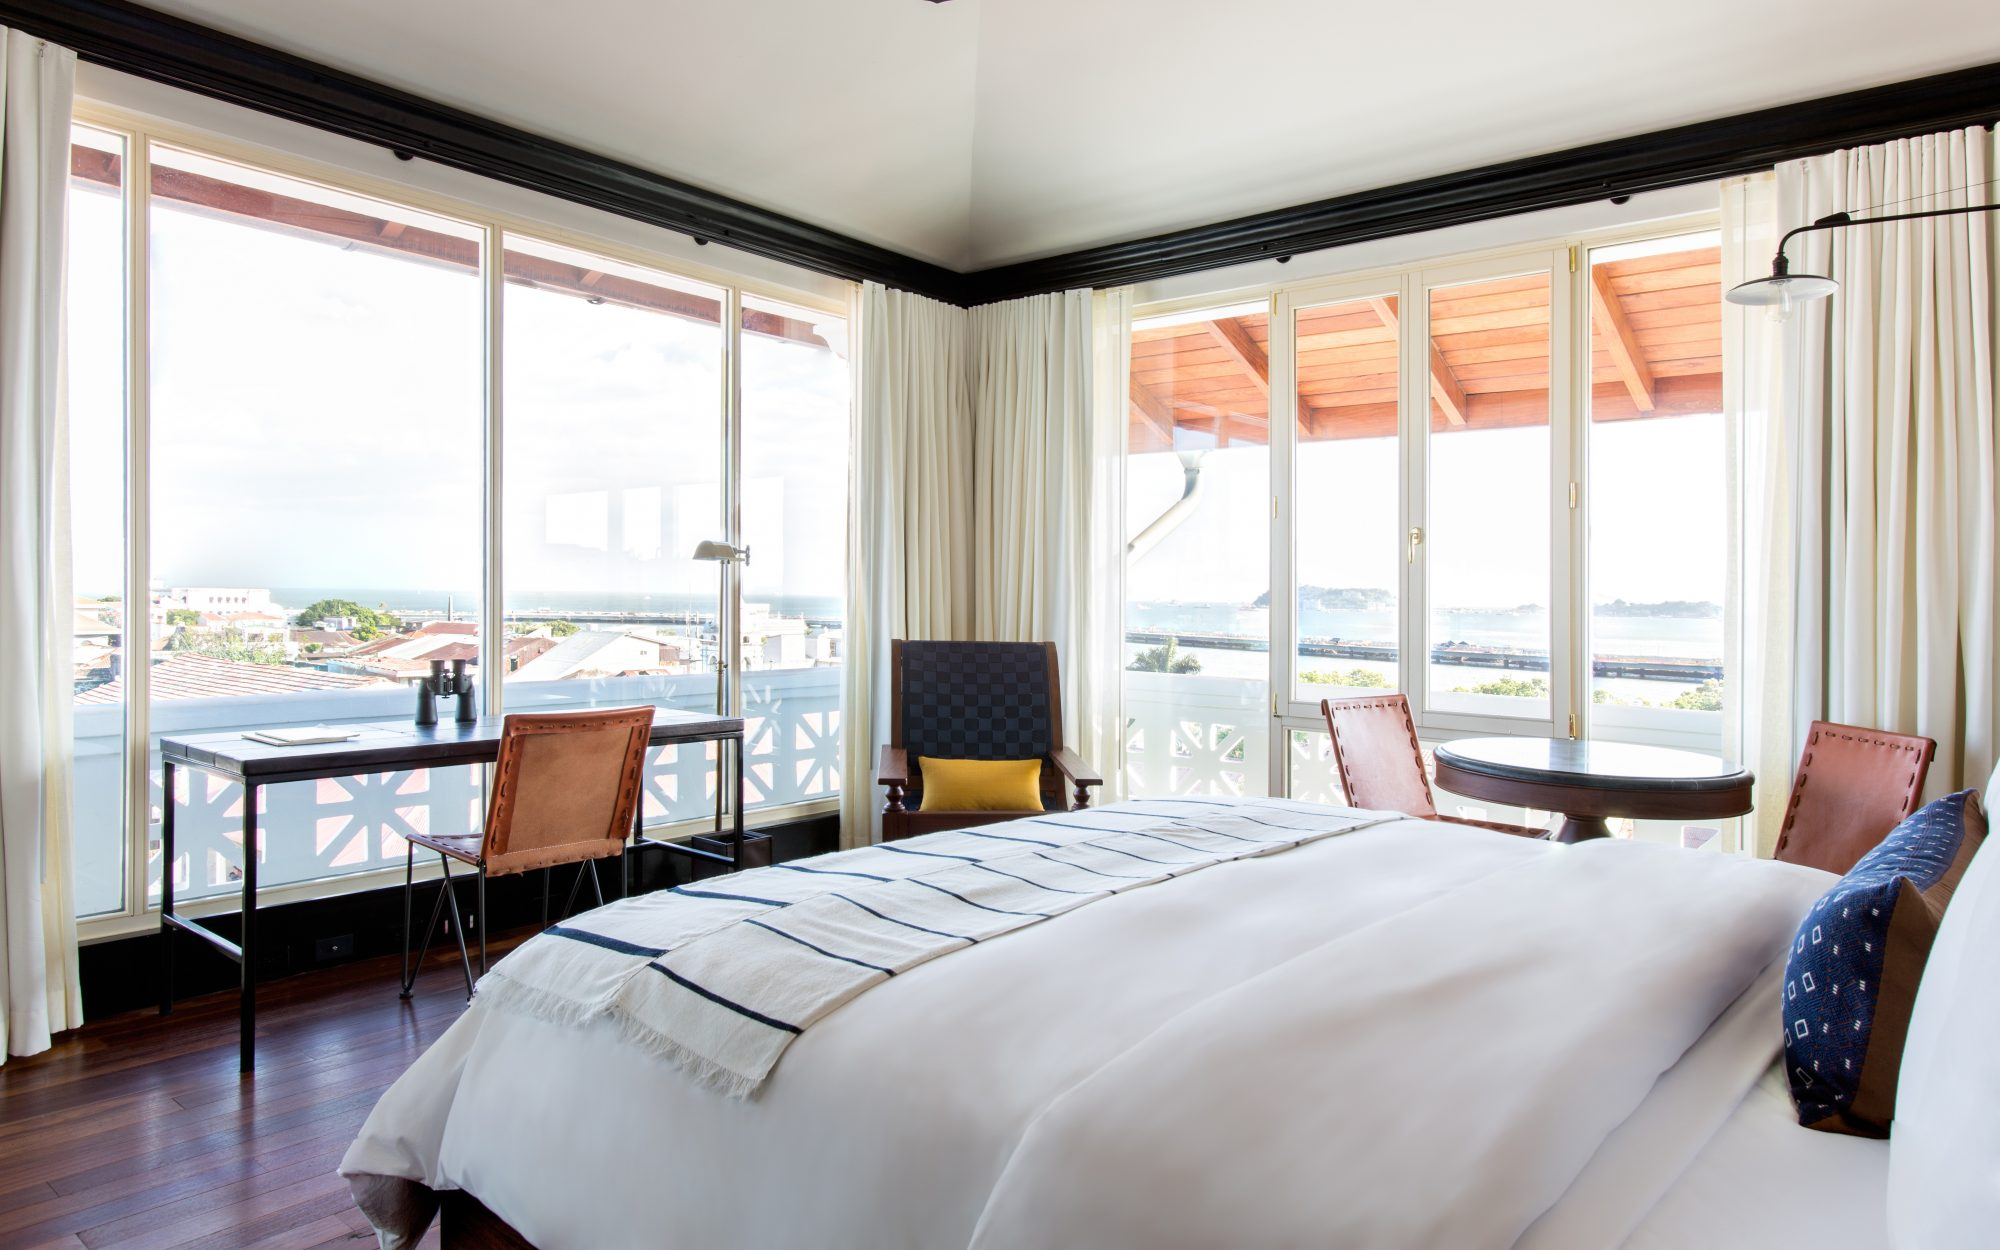 It List: The Best New Hotels 2015: New Urbanist: American Trade Hotel & Hall, Panama City